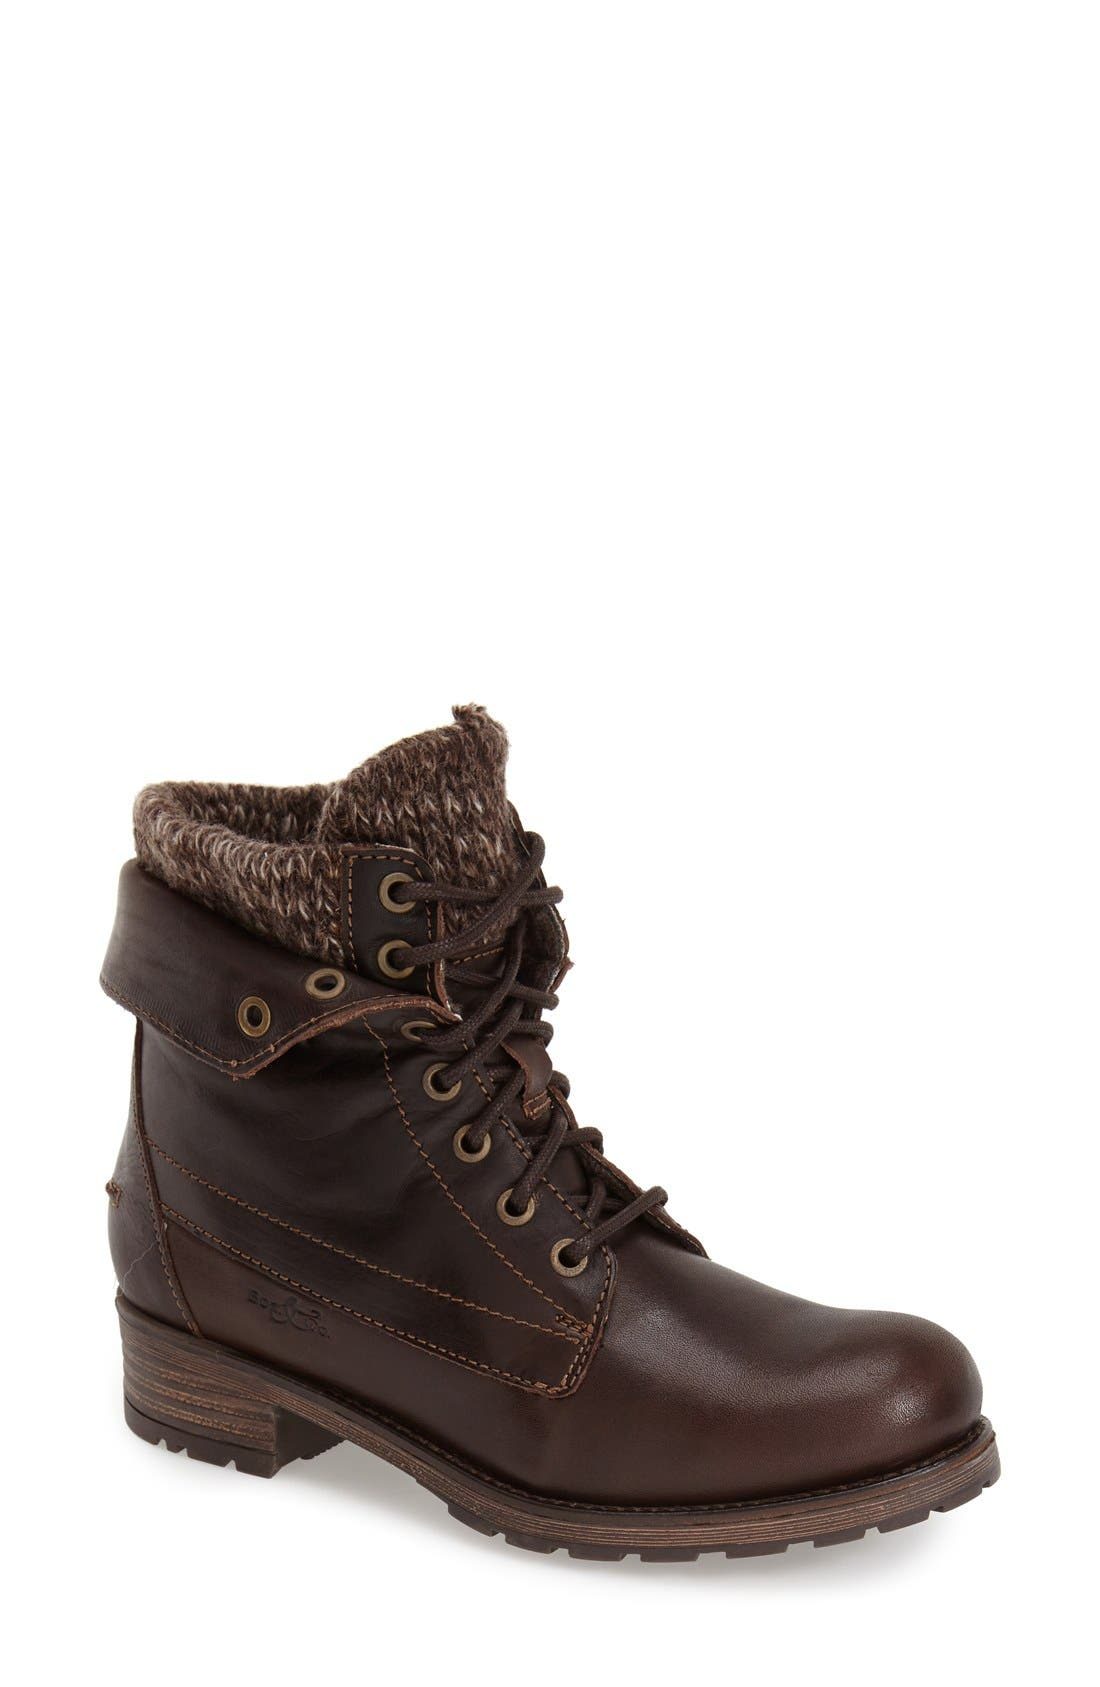 Alternate Image 1 Selected - Bos. & Co. 'Padang' Waterproof Boot (Women)